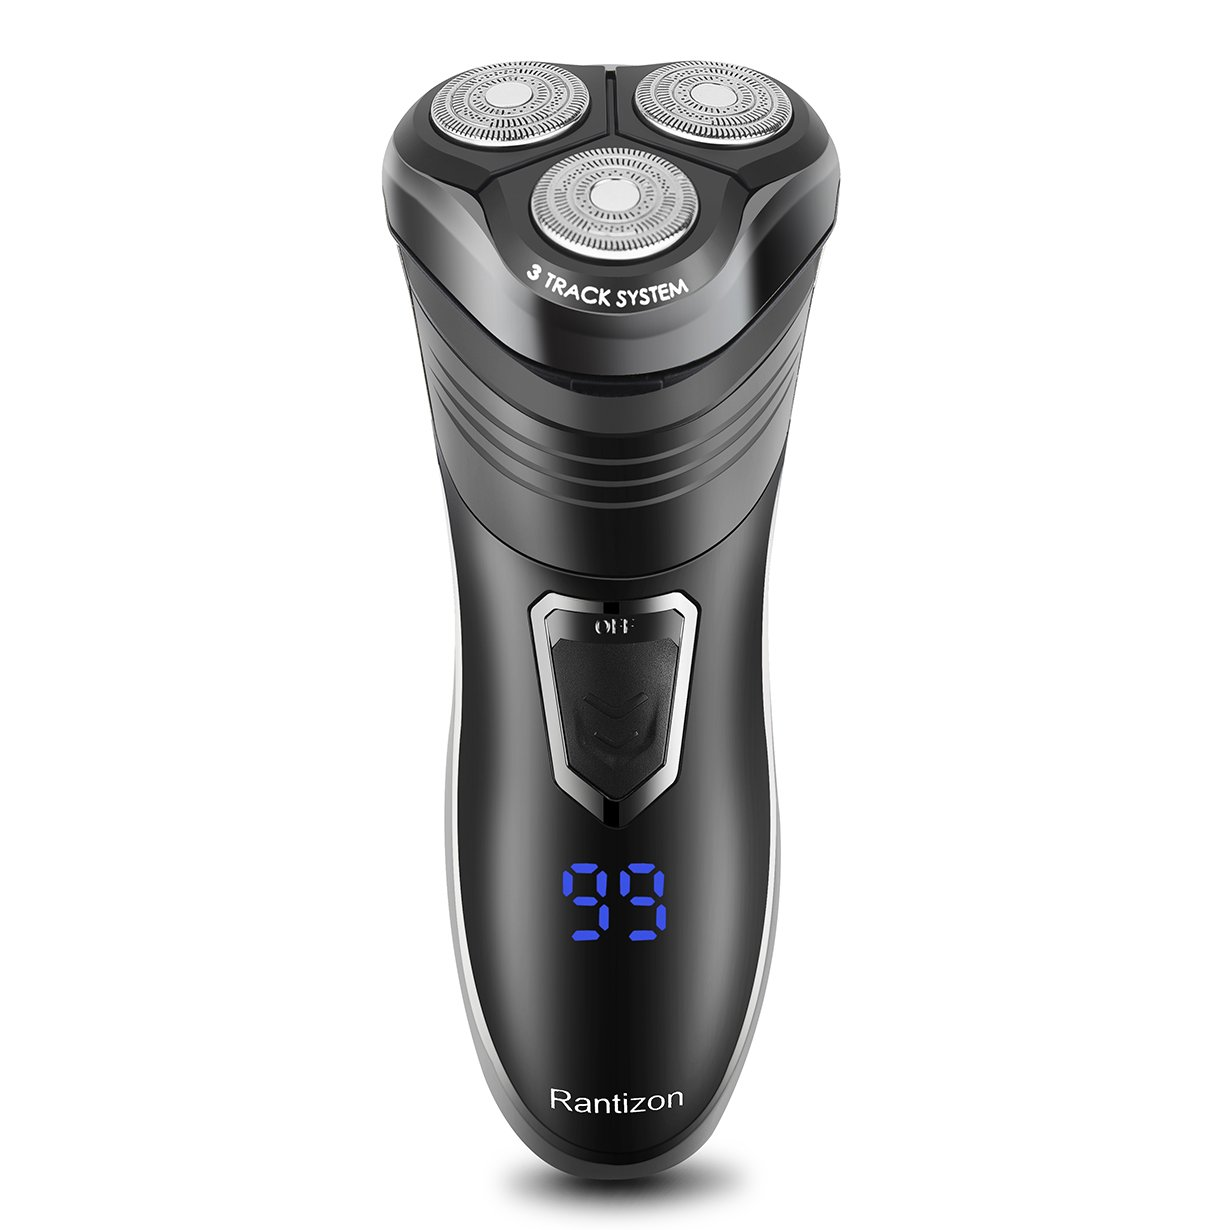 Electric Shaver, Rantizon R-11 Wet & Dry Cordless Rotary Shaver for Men Upgraded Triple-Track Blade IPX6 Washable Rechargeable Razor with Pop-Up Trimmer